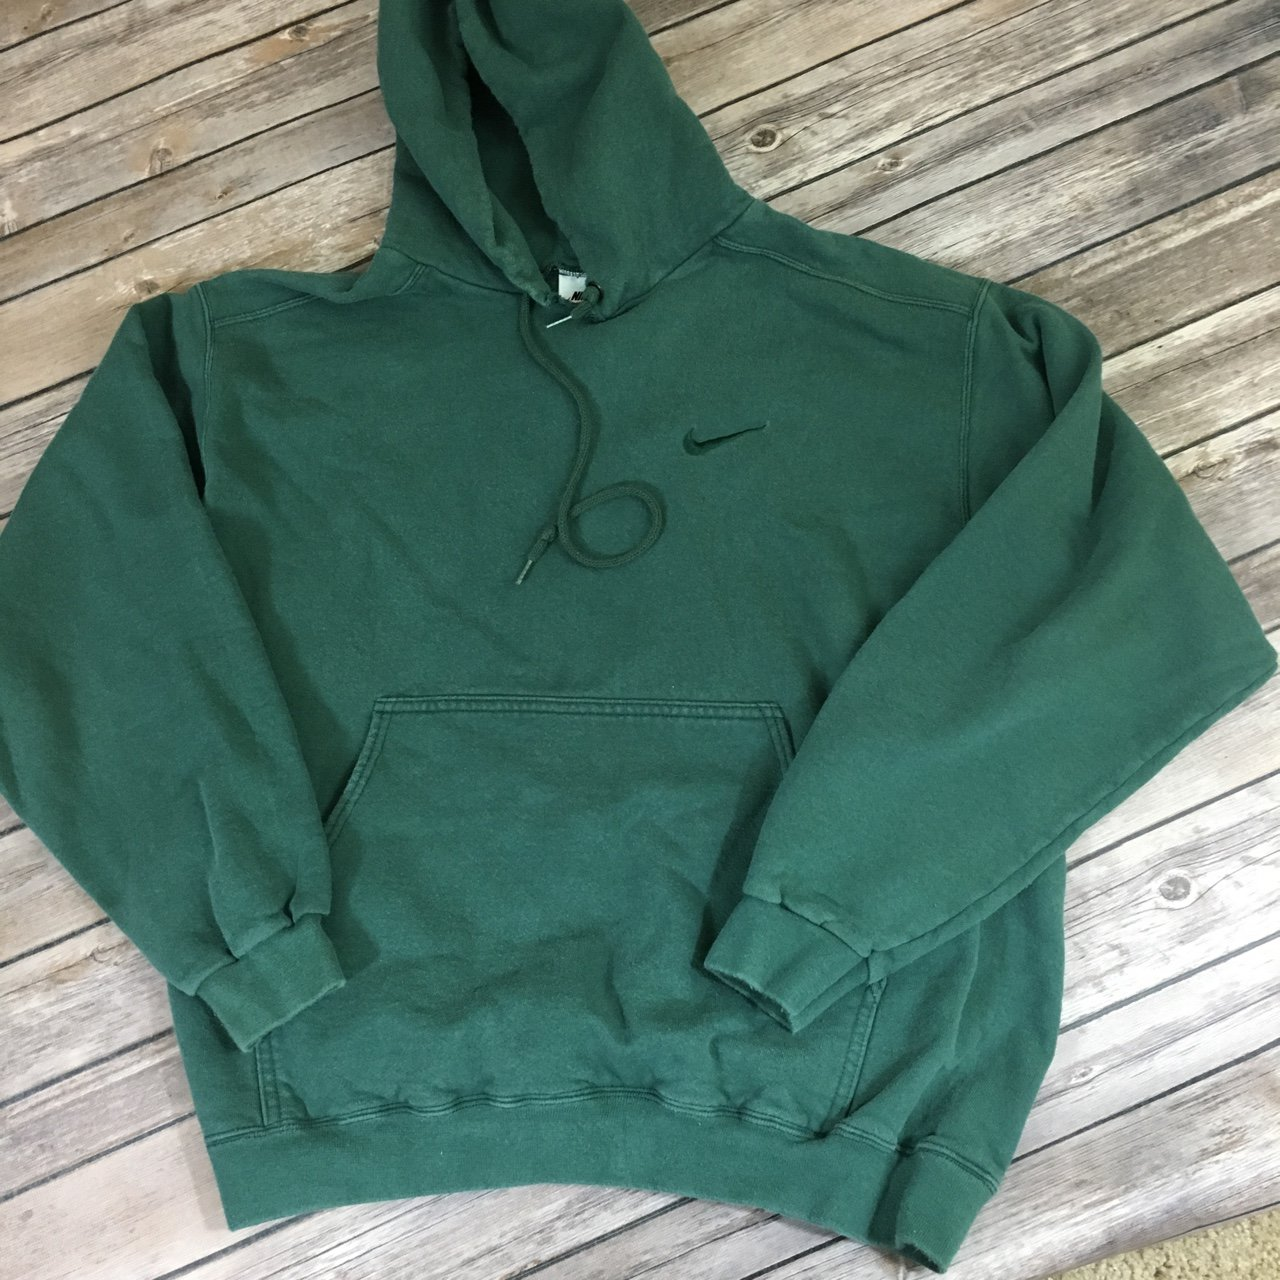 Vintage Nike dark green hoodie size men's medium. Depop